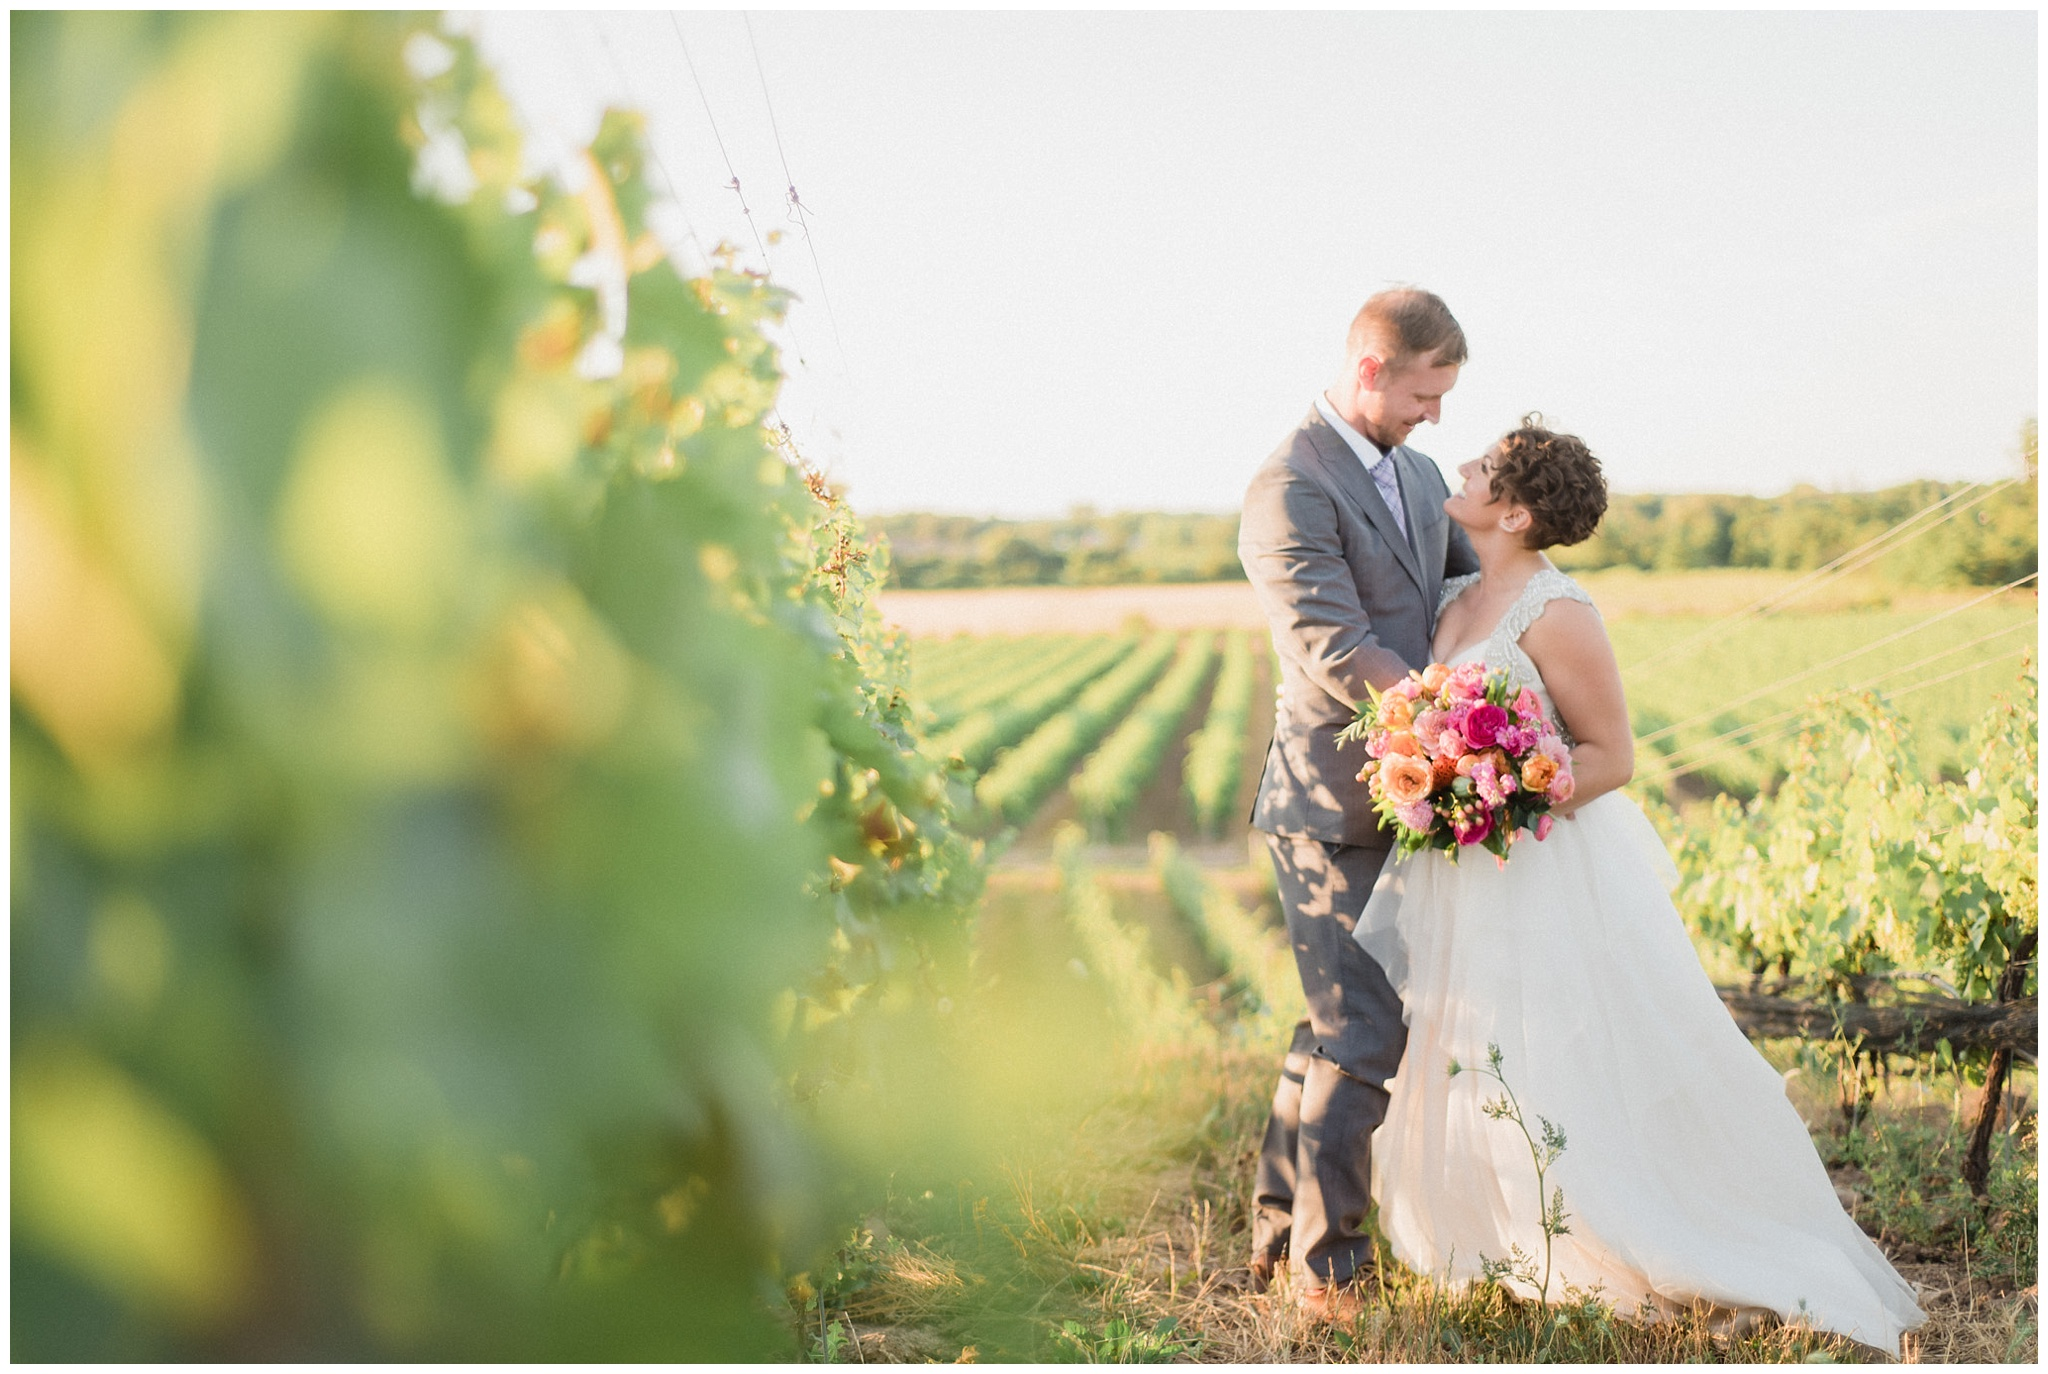 Sunset Niagara Vineyard Wedding by Jenn Kavanagh Photography